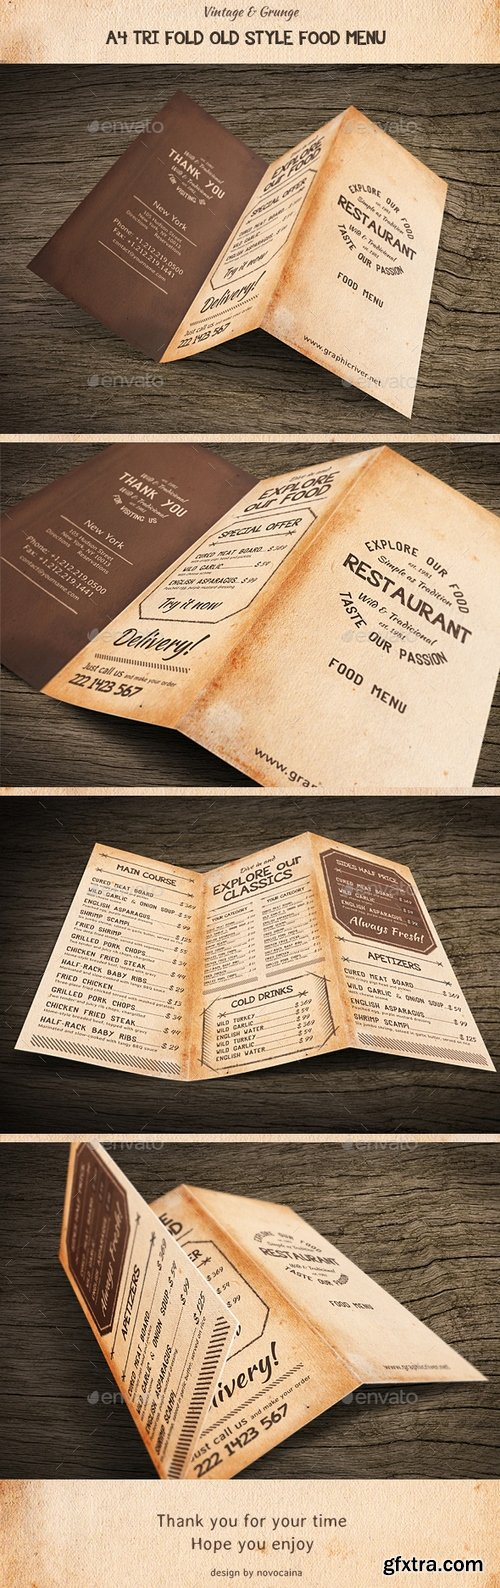 Graphicriver - Old Style A4 Trifold Food Menu 15956927